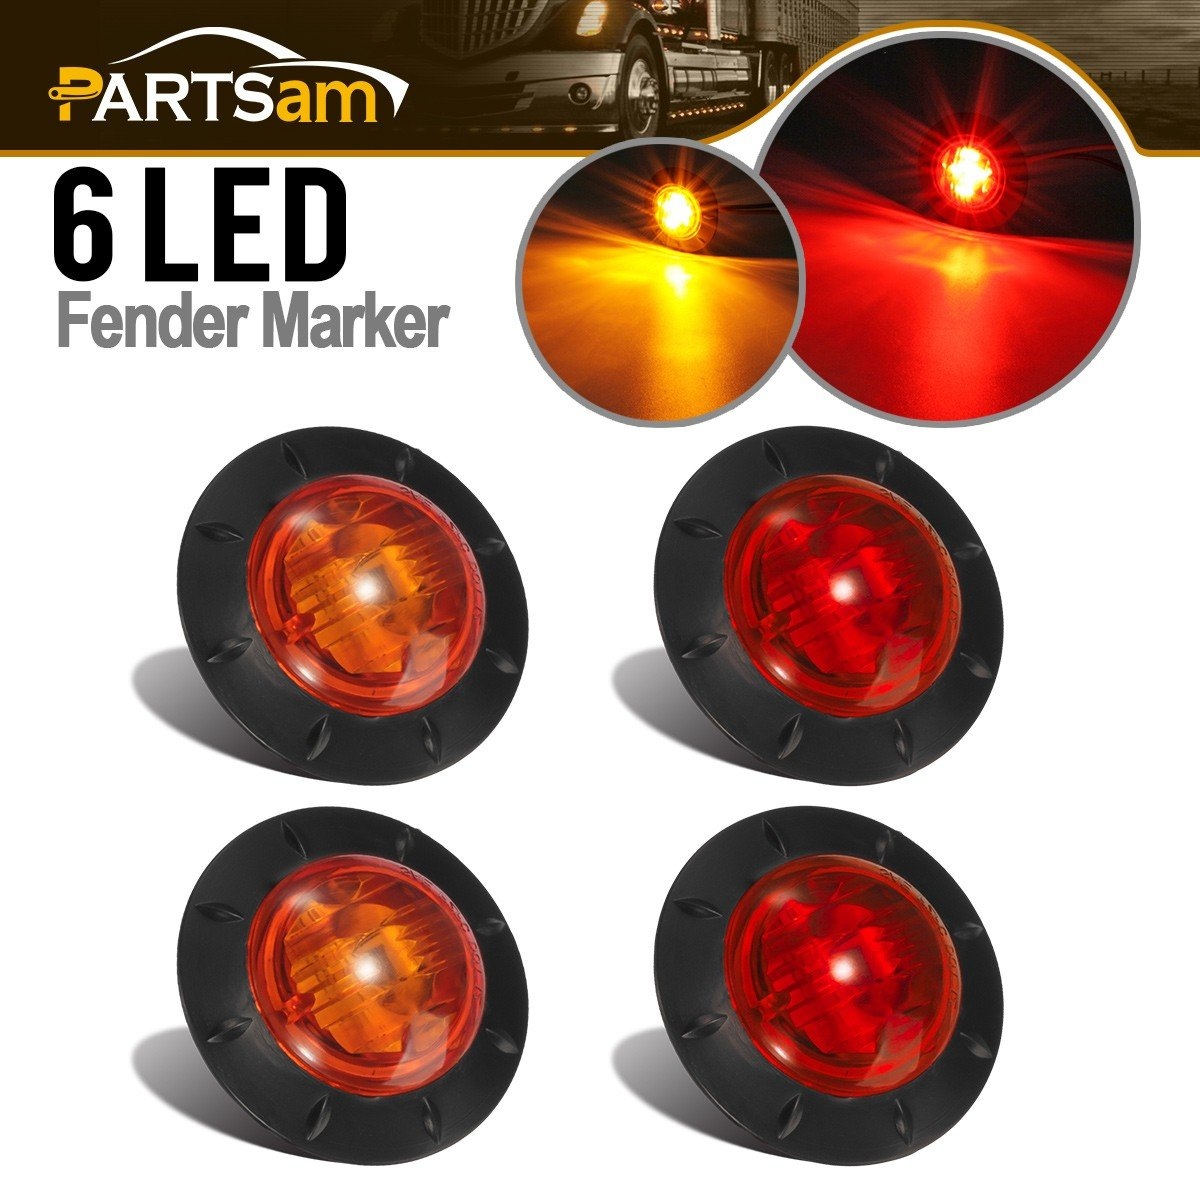 Partsam 1-5/16 Inch Grommet Mount Red Trailer LED Clearance Markers Lights Sidelight 6-2835SMD, Universal Sealed Led Marker Lights Lamps RV Truck Jeep SUV (2Amber+2Red)